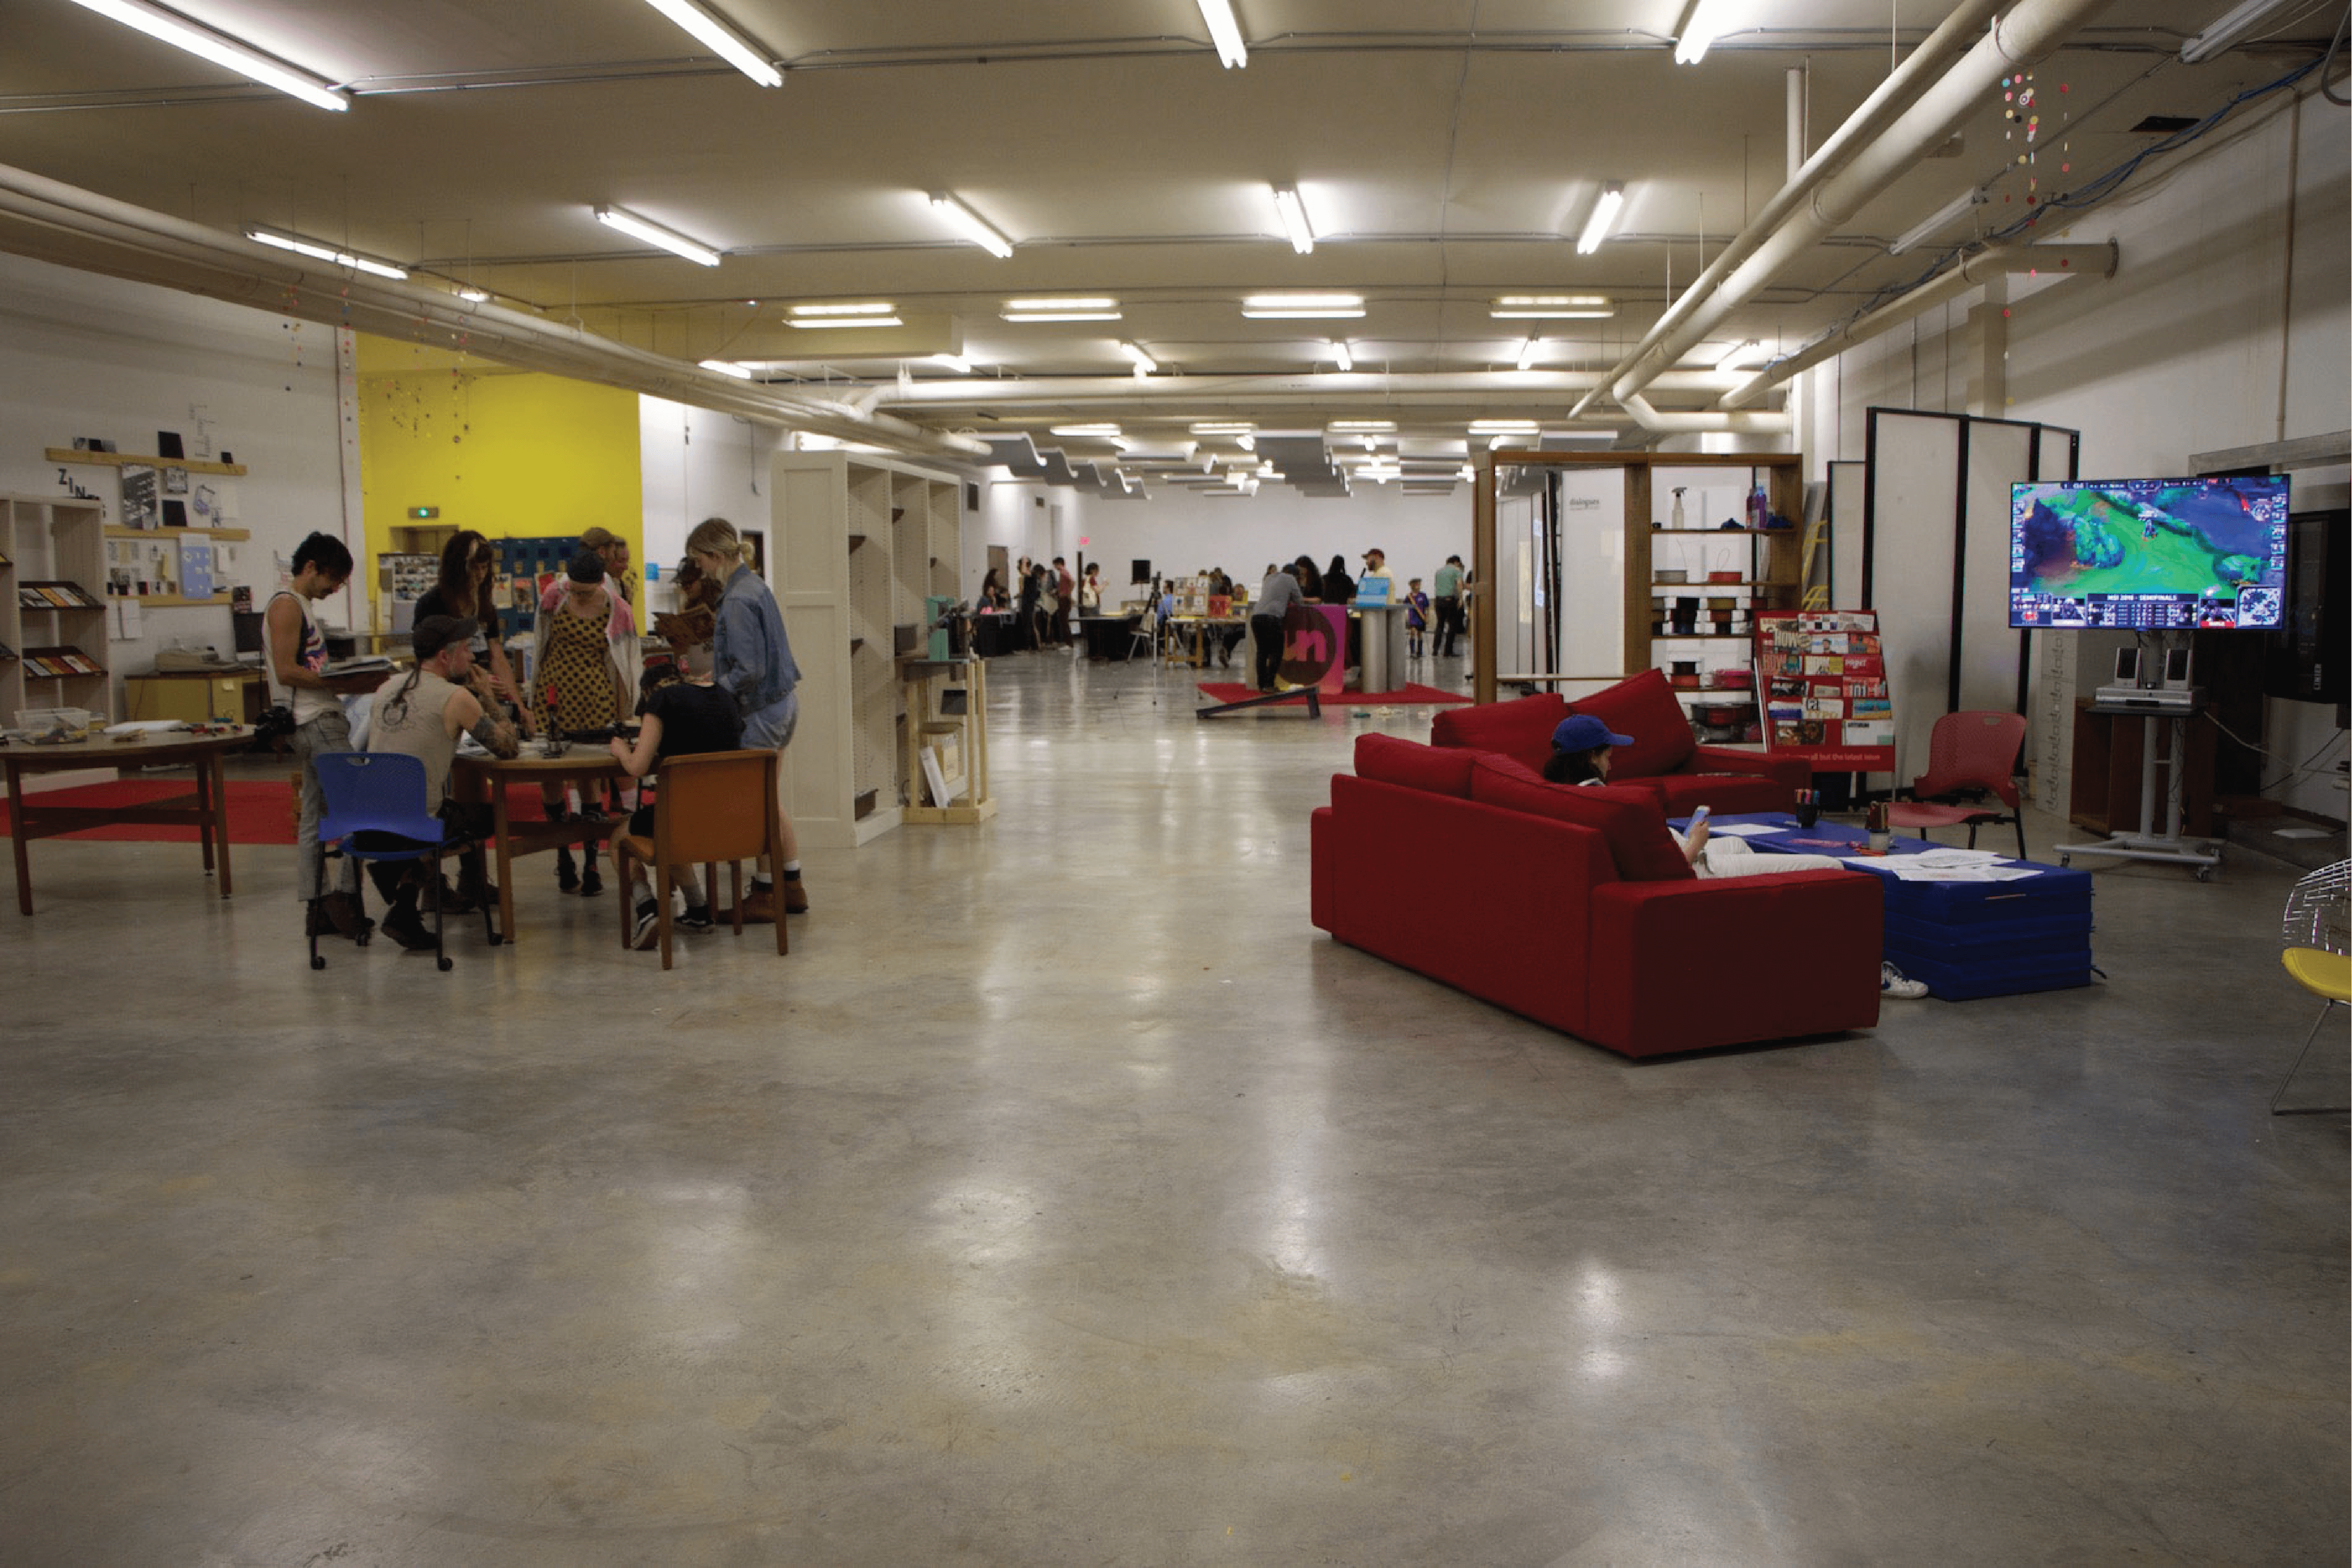 Pictured is the 4th floor of the Chattatnooga PUblic library with several people taking part of various activities